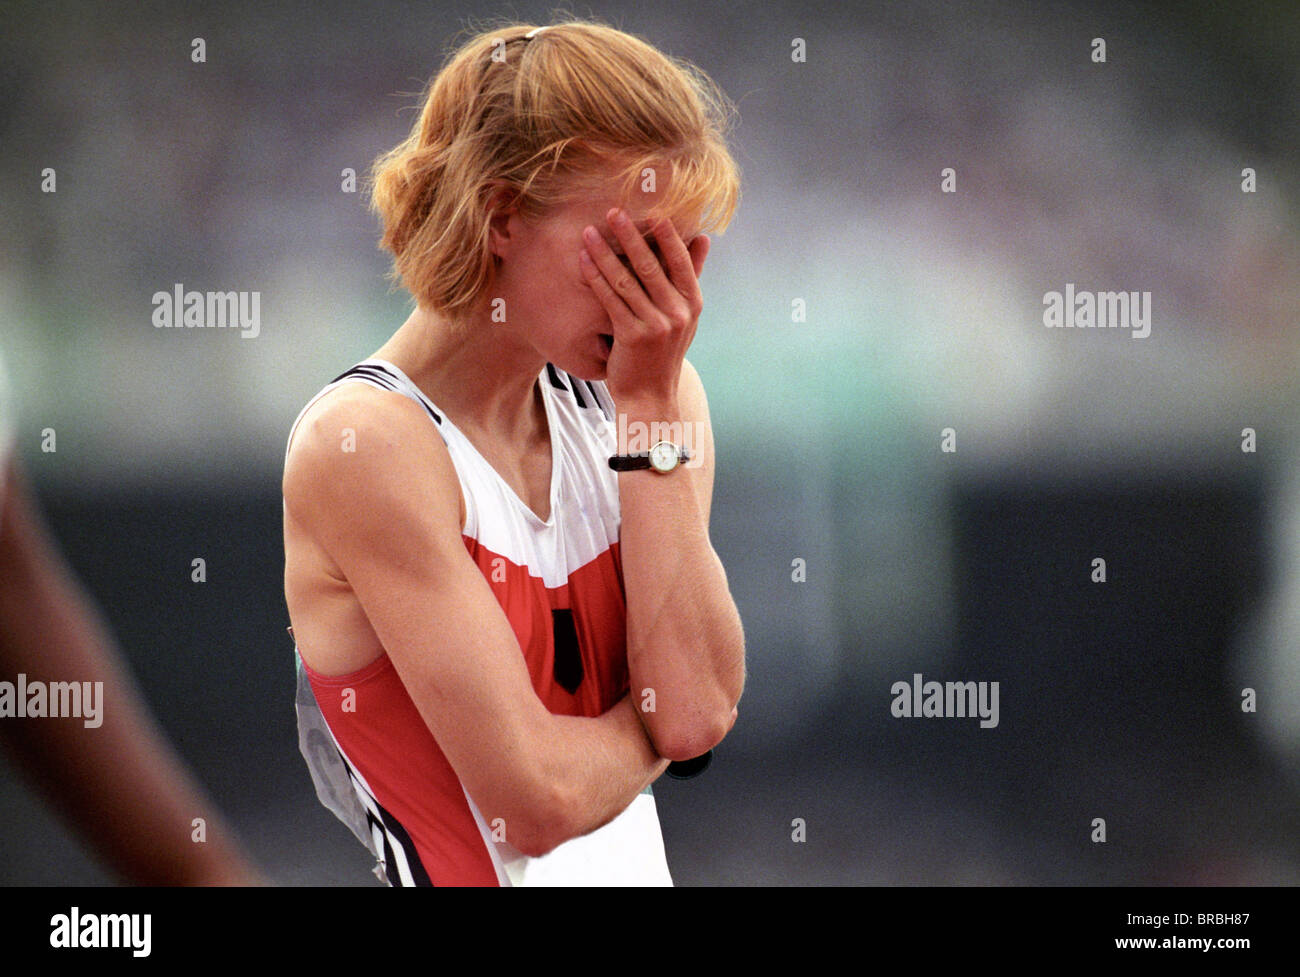 Female athlete covers her face in disappoinment - Stock Image